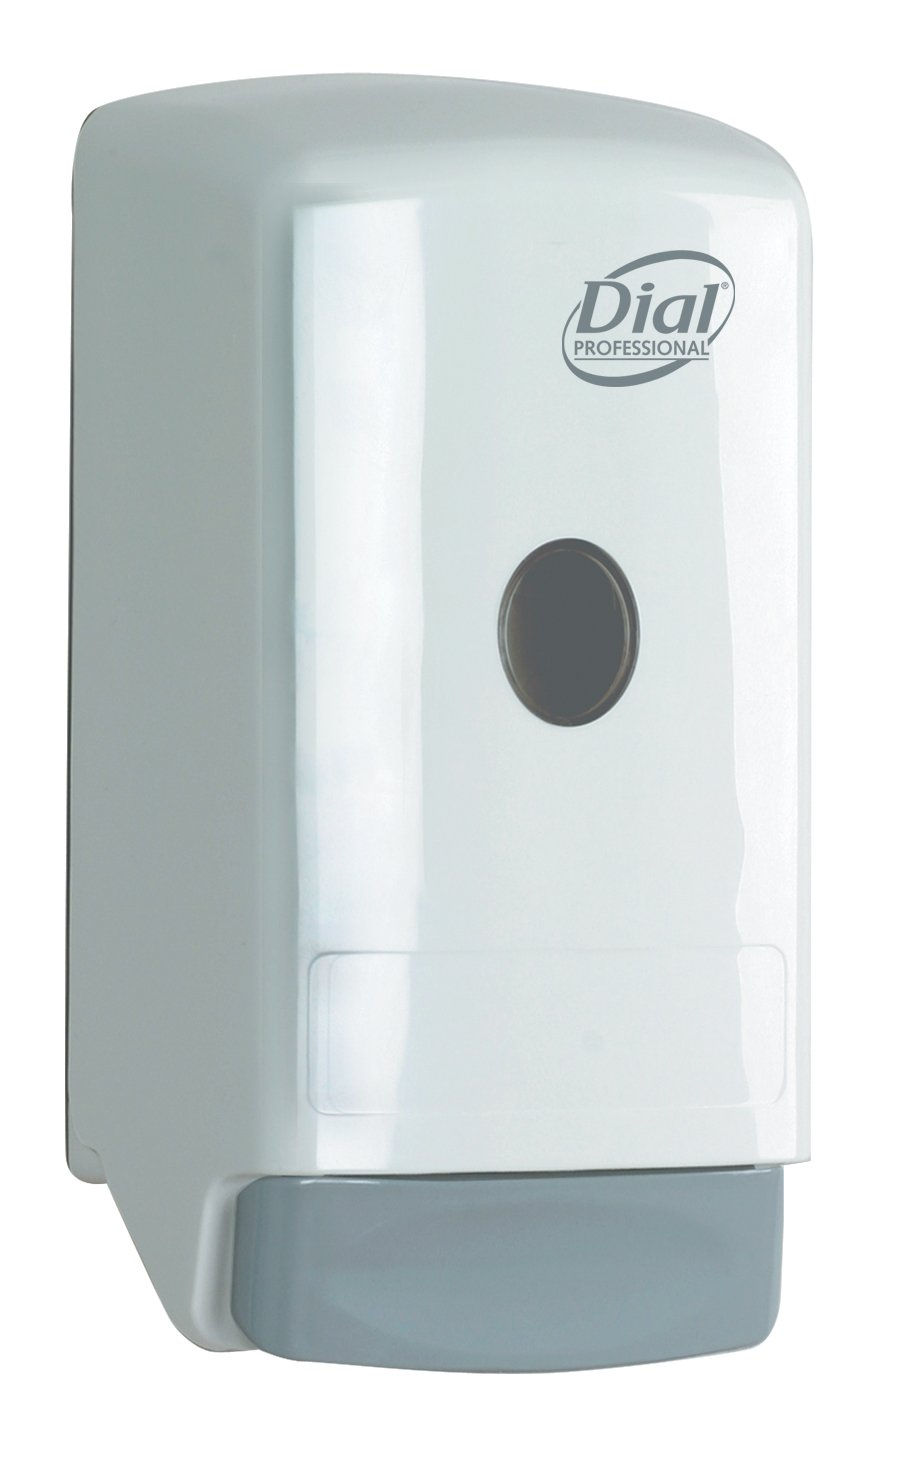 Dial Model 22 800mL White Dispenser for Liquid Hand Soap and Gel Hand Sanitizers,  5.25 Width x 10.25 Height x 4 Depth, (Pack of 6) by Dial